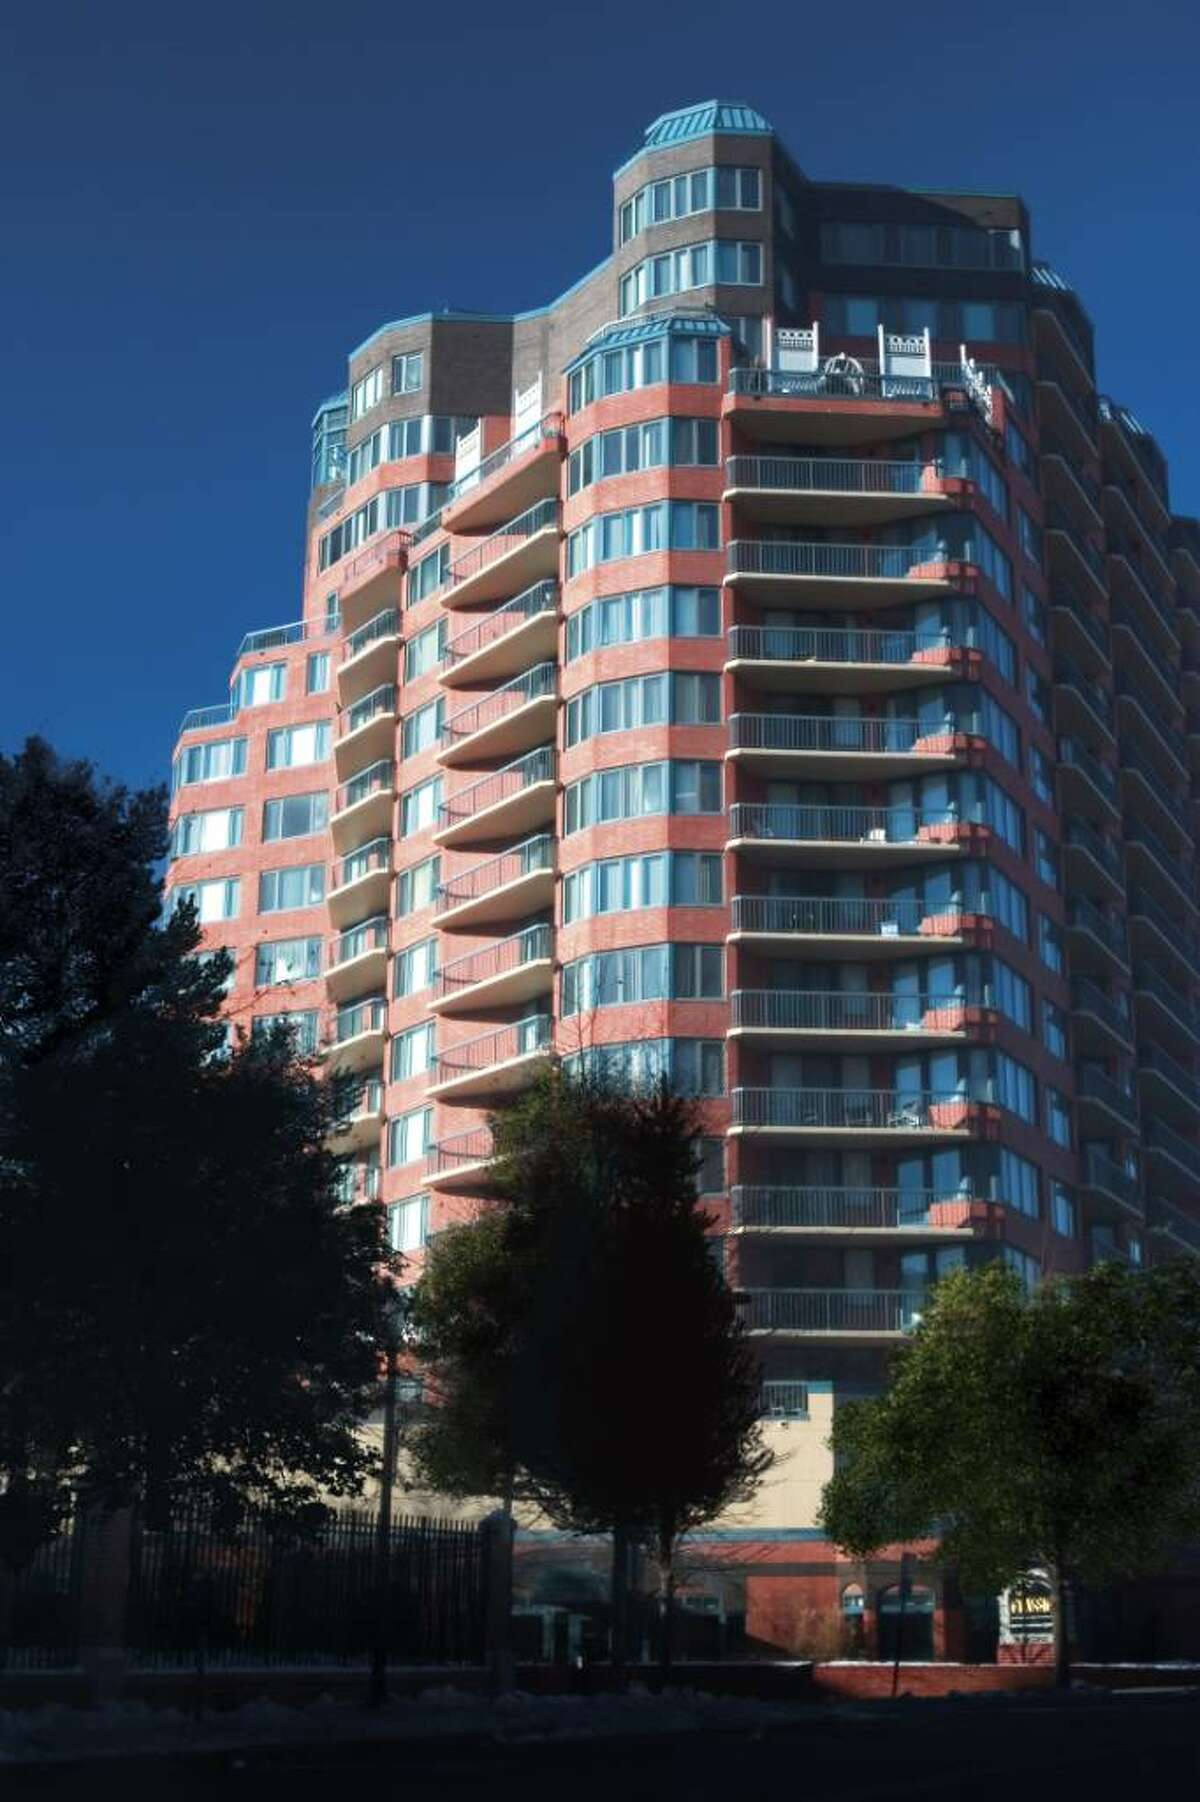 Accelerated Marketing Partners' auction of 28 luxury condominium residences at The Classic Condominiums at 25 Forest St. in Stamford, was a speedy sellout.